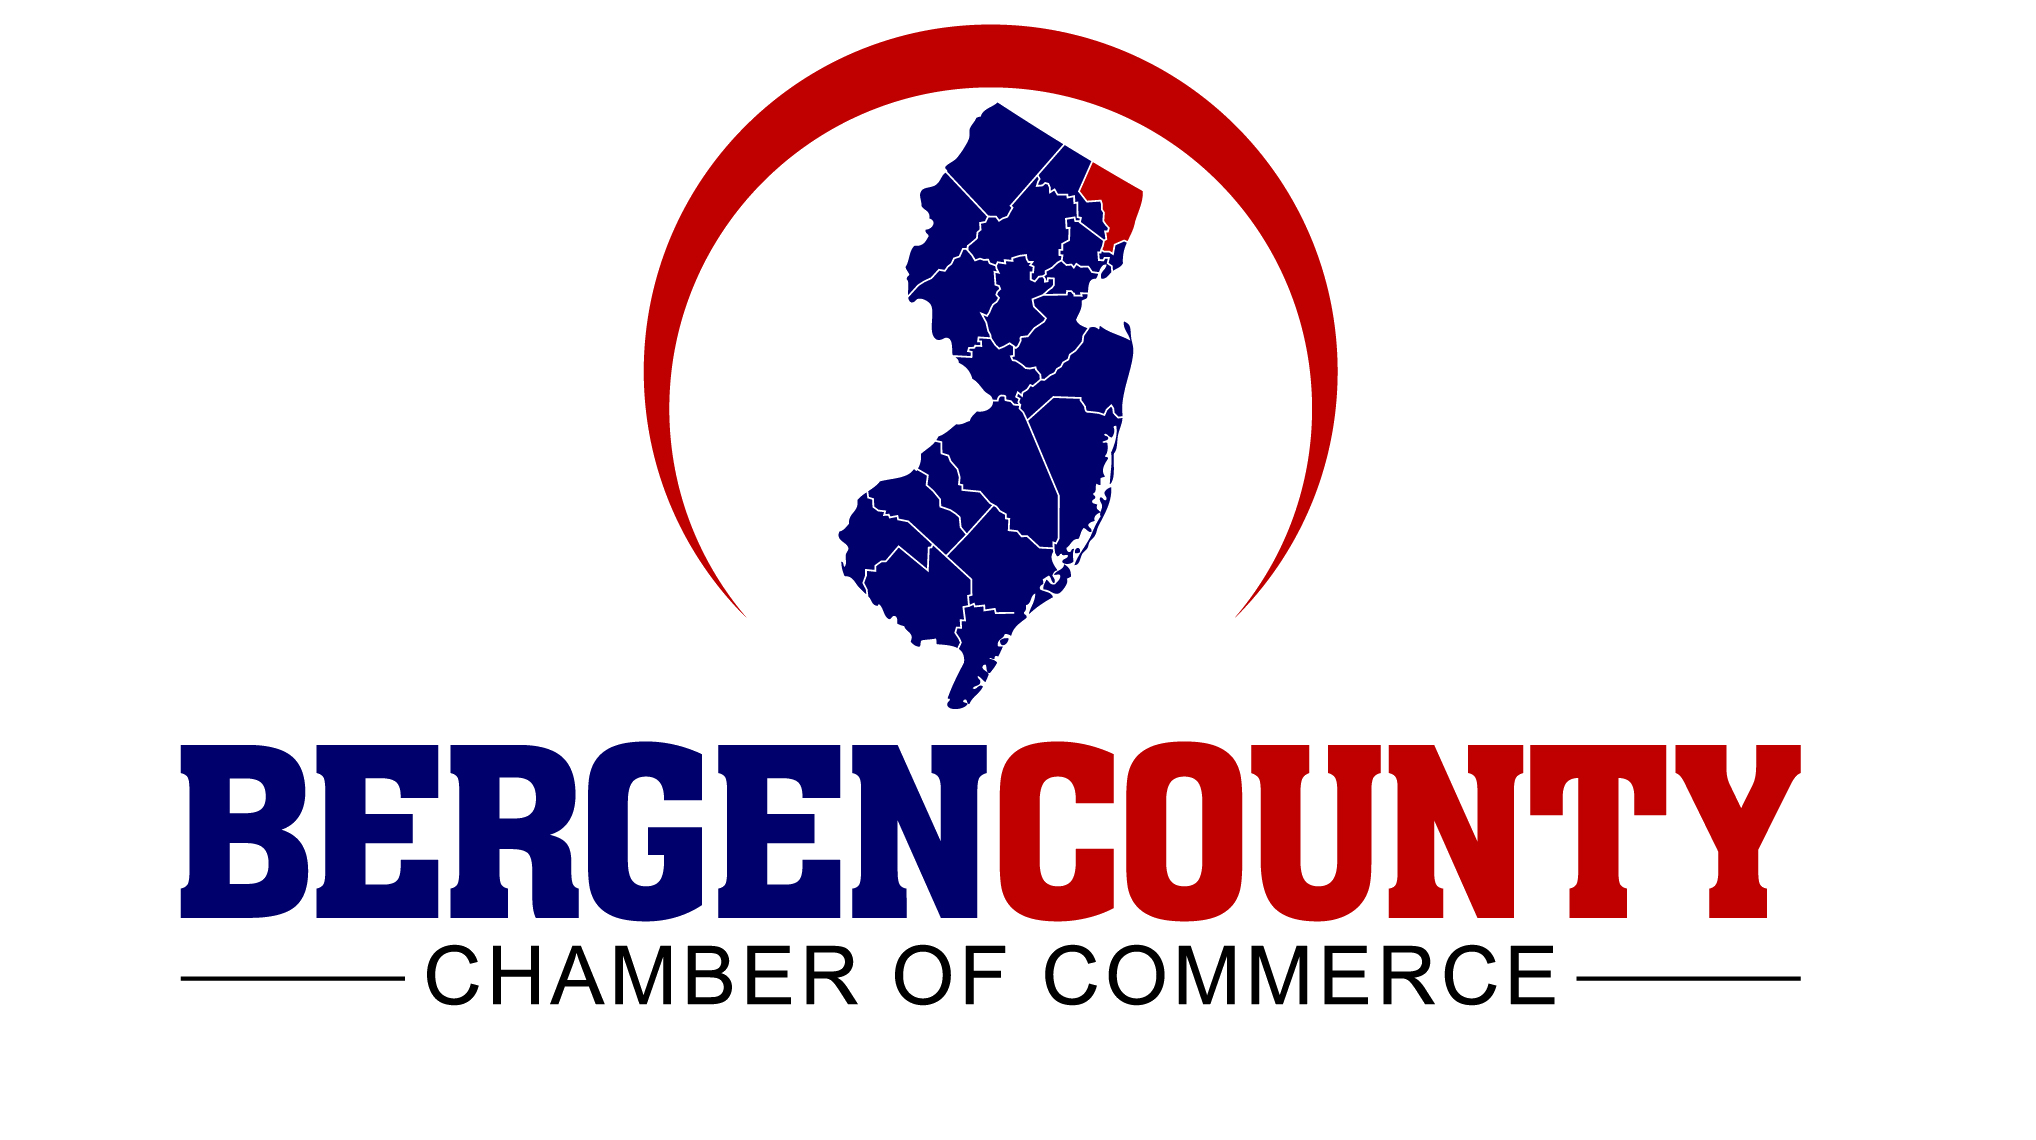 The Bergen County Chamber of Commerce